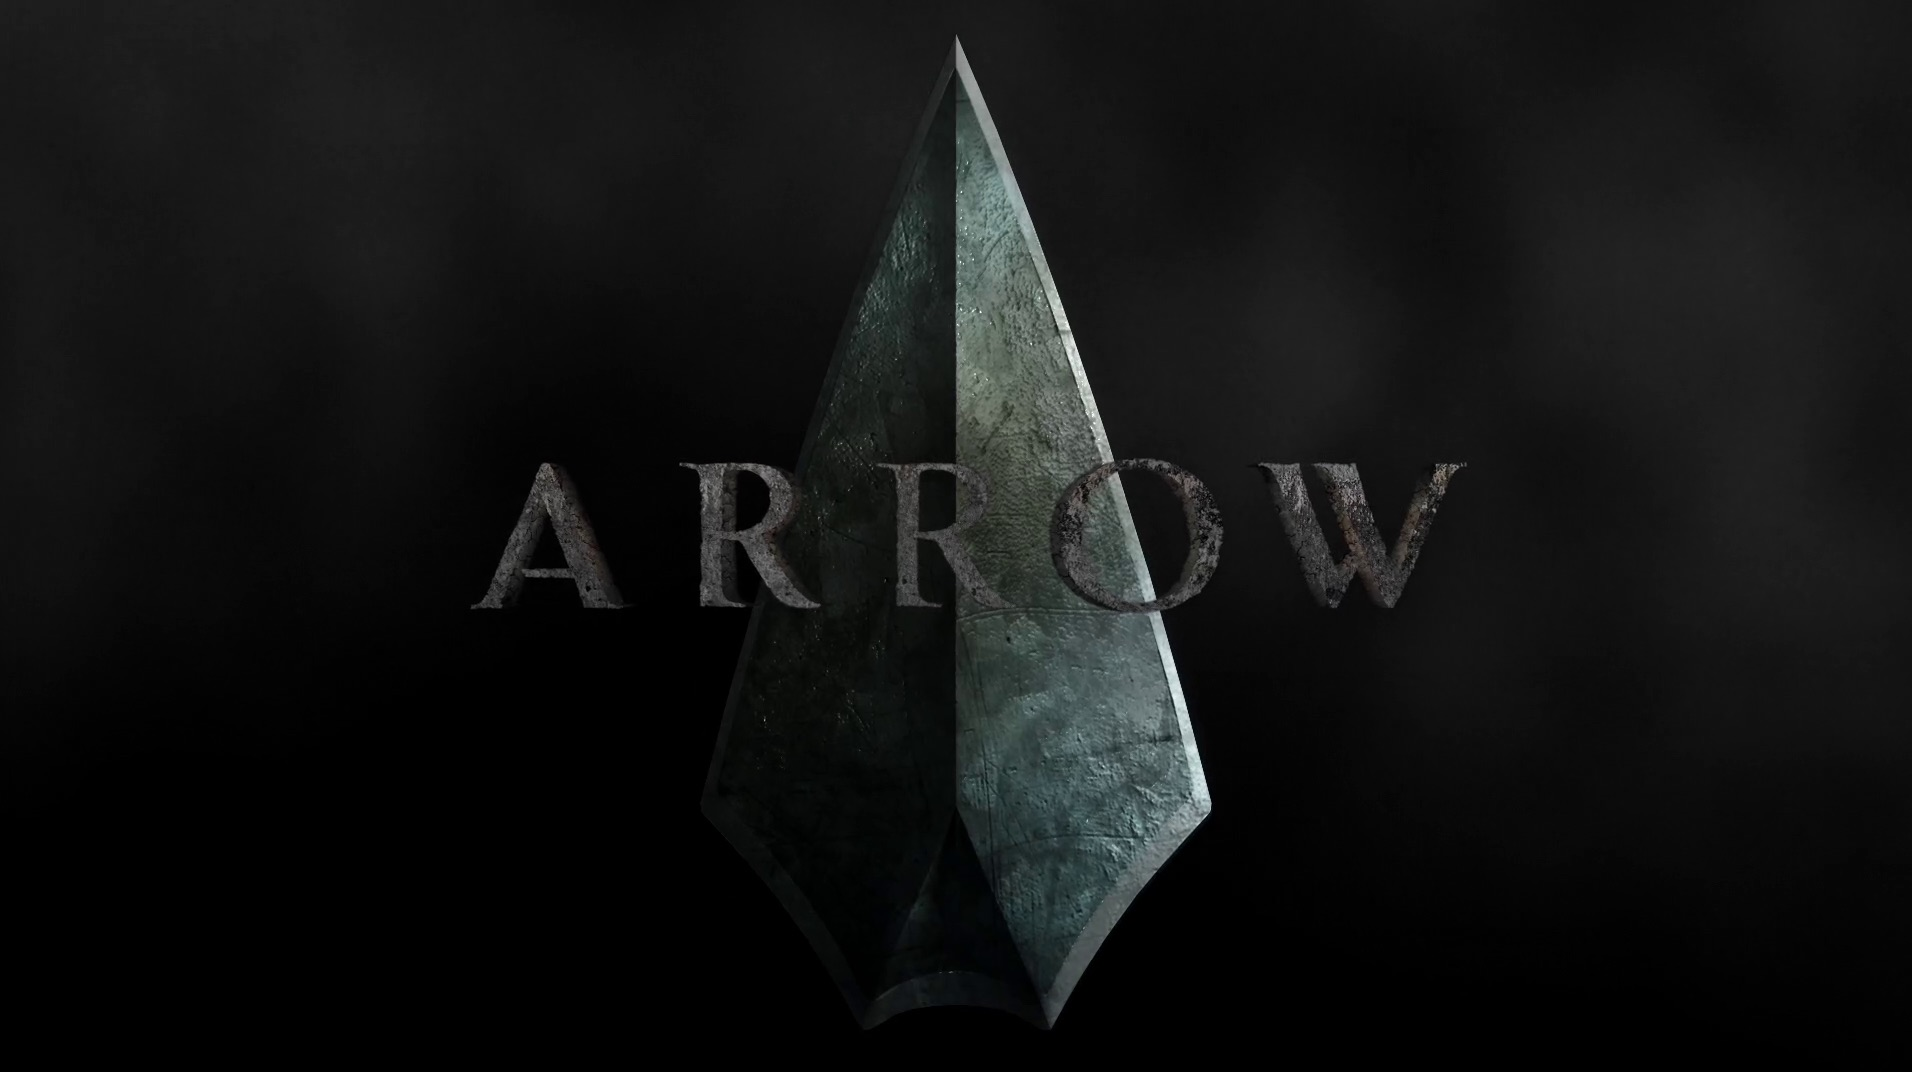 Arrow (TV Series) Episode: Welcome to Hong Kong